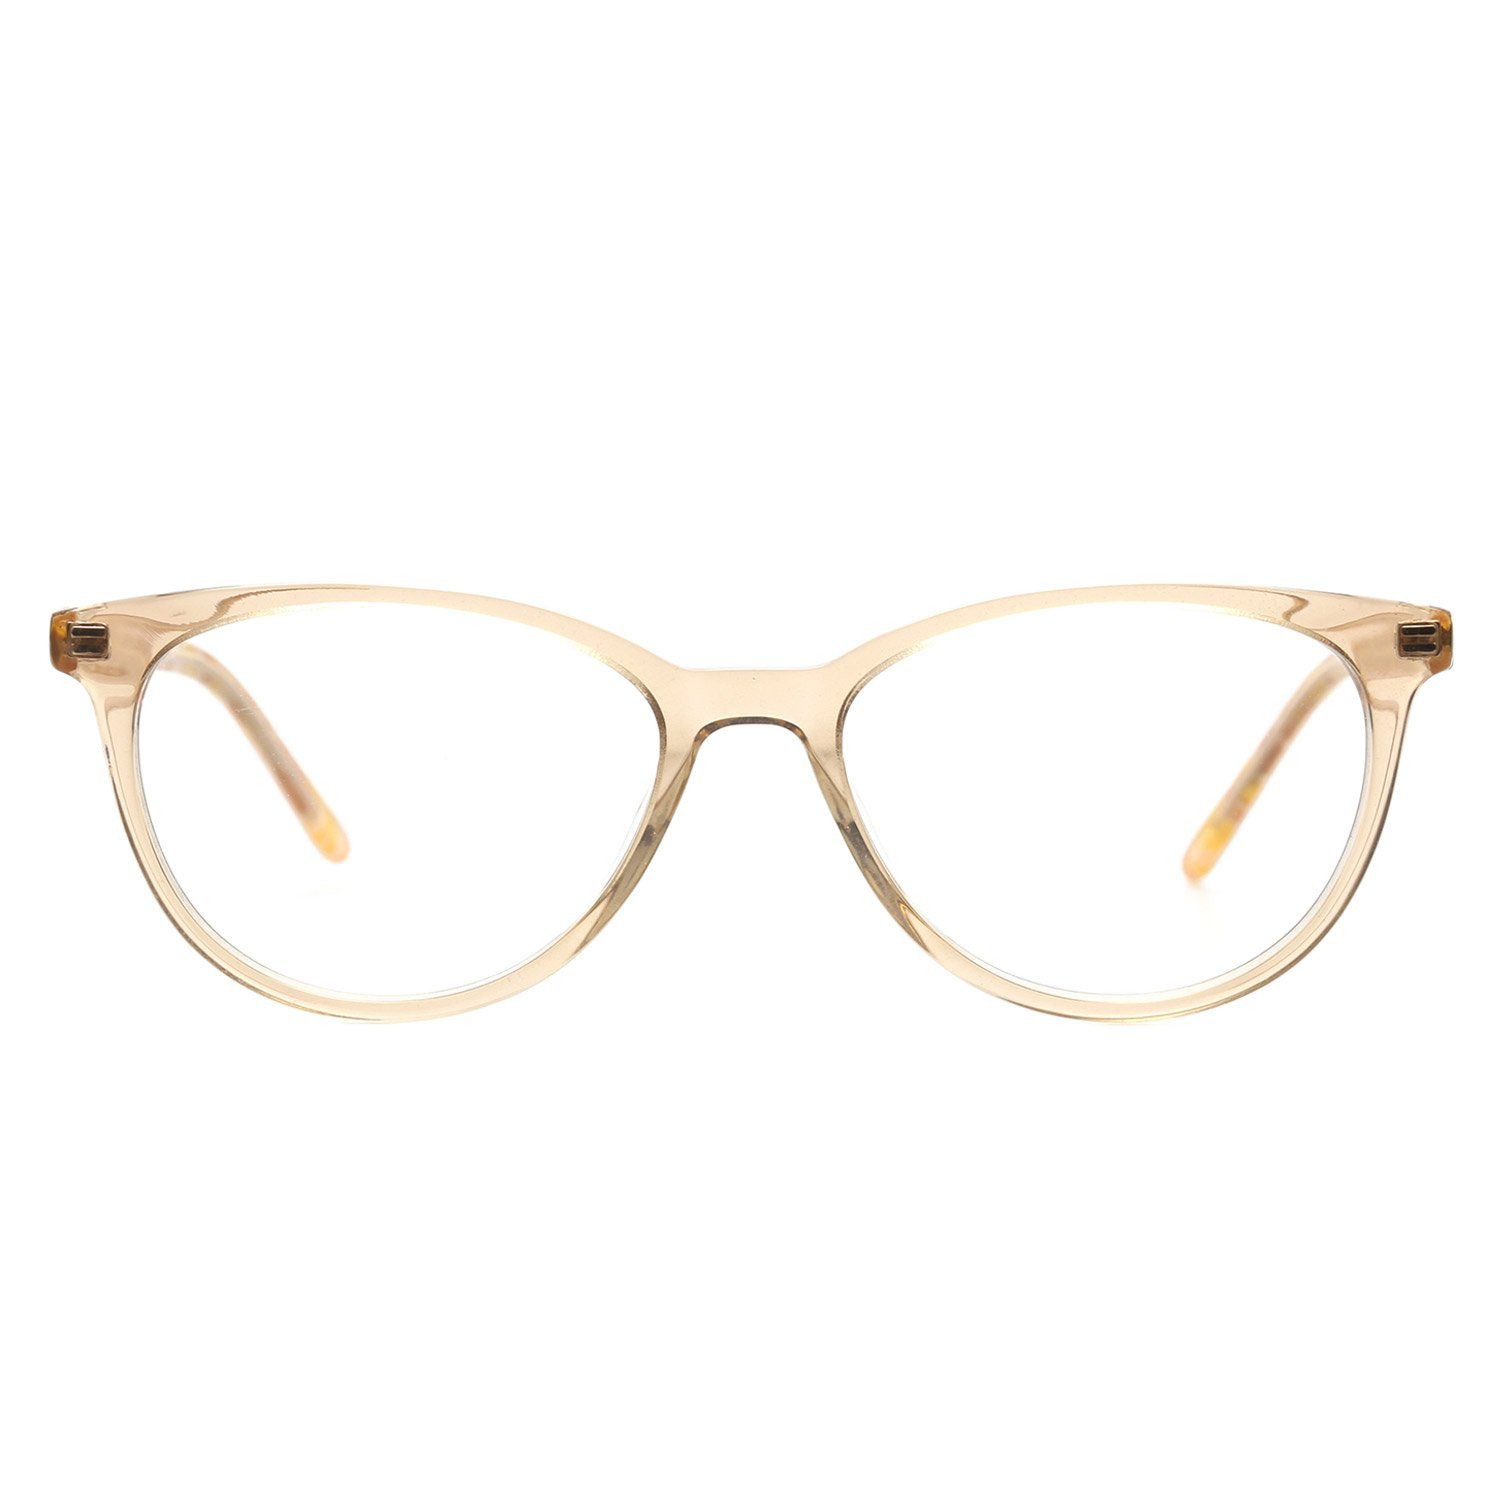 Limited Quantities Available For Blue Light Filter Glasses